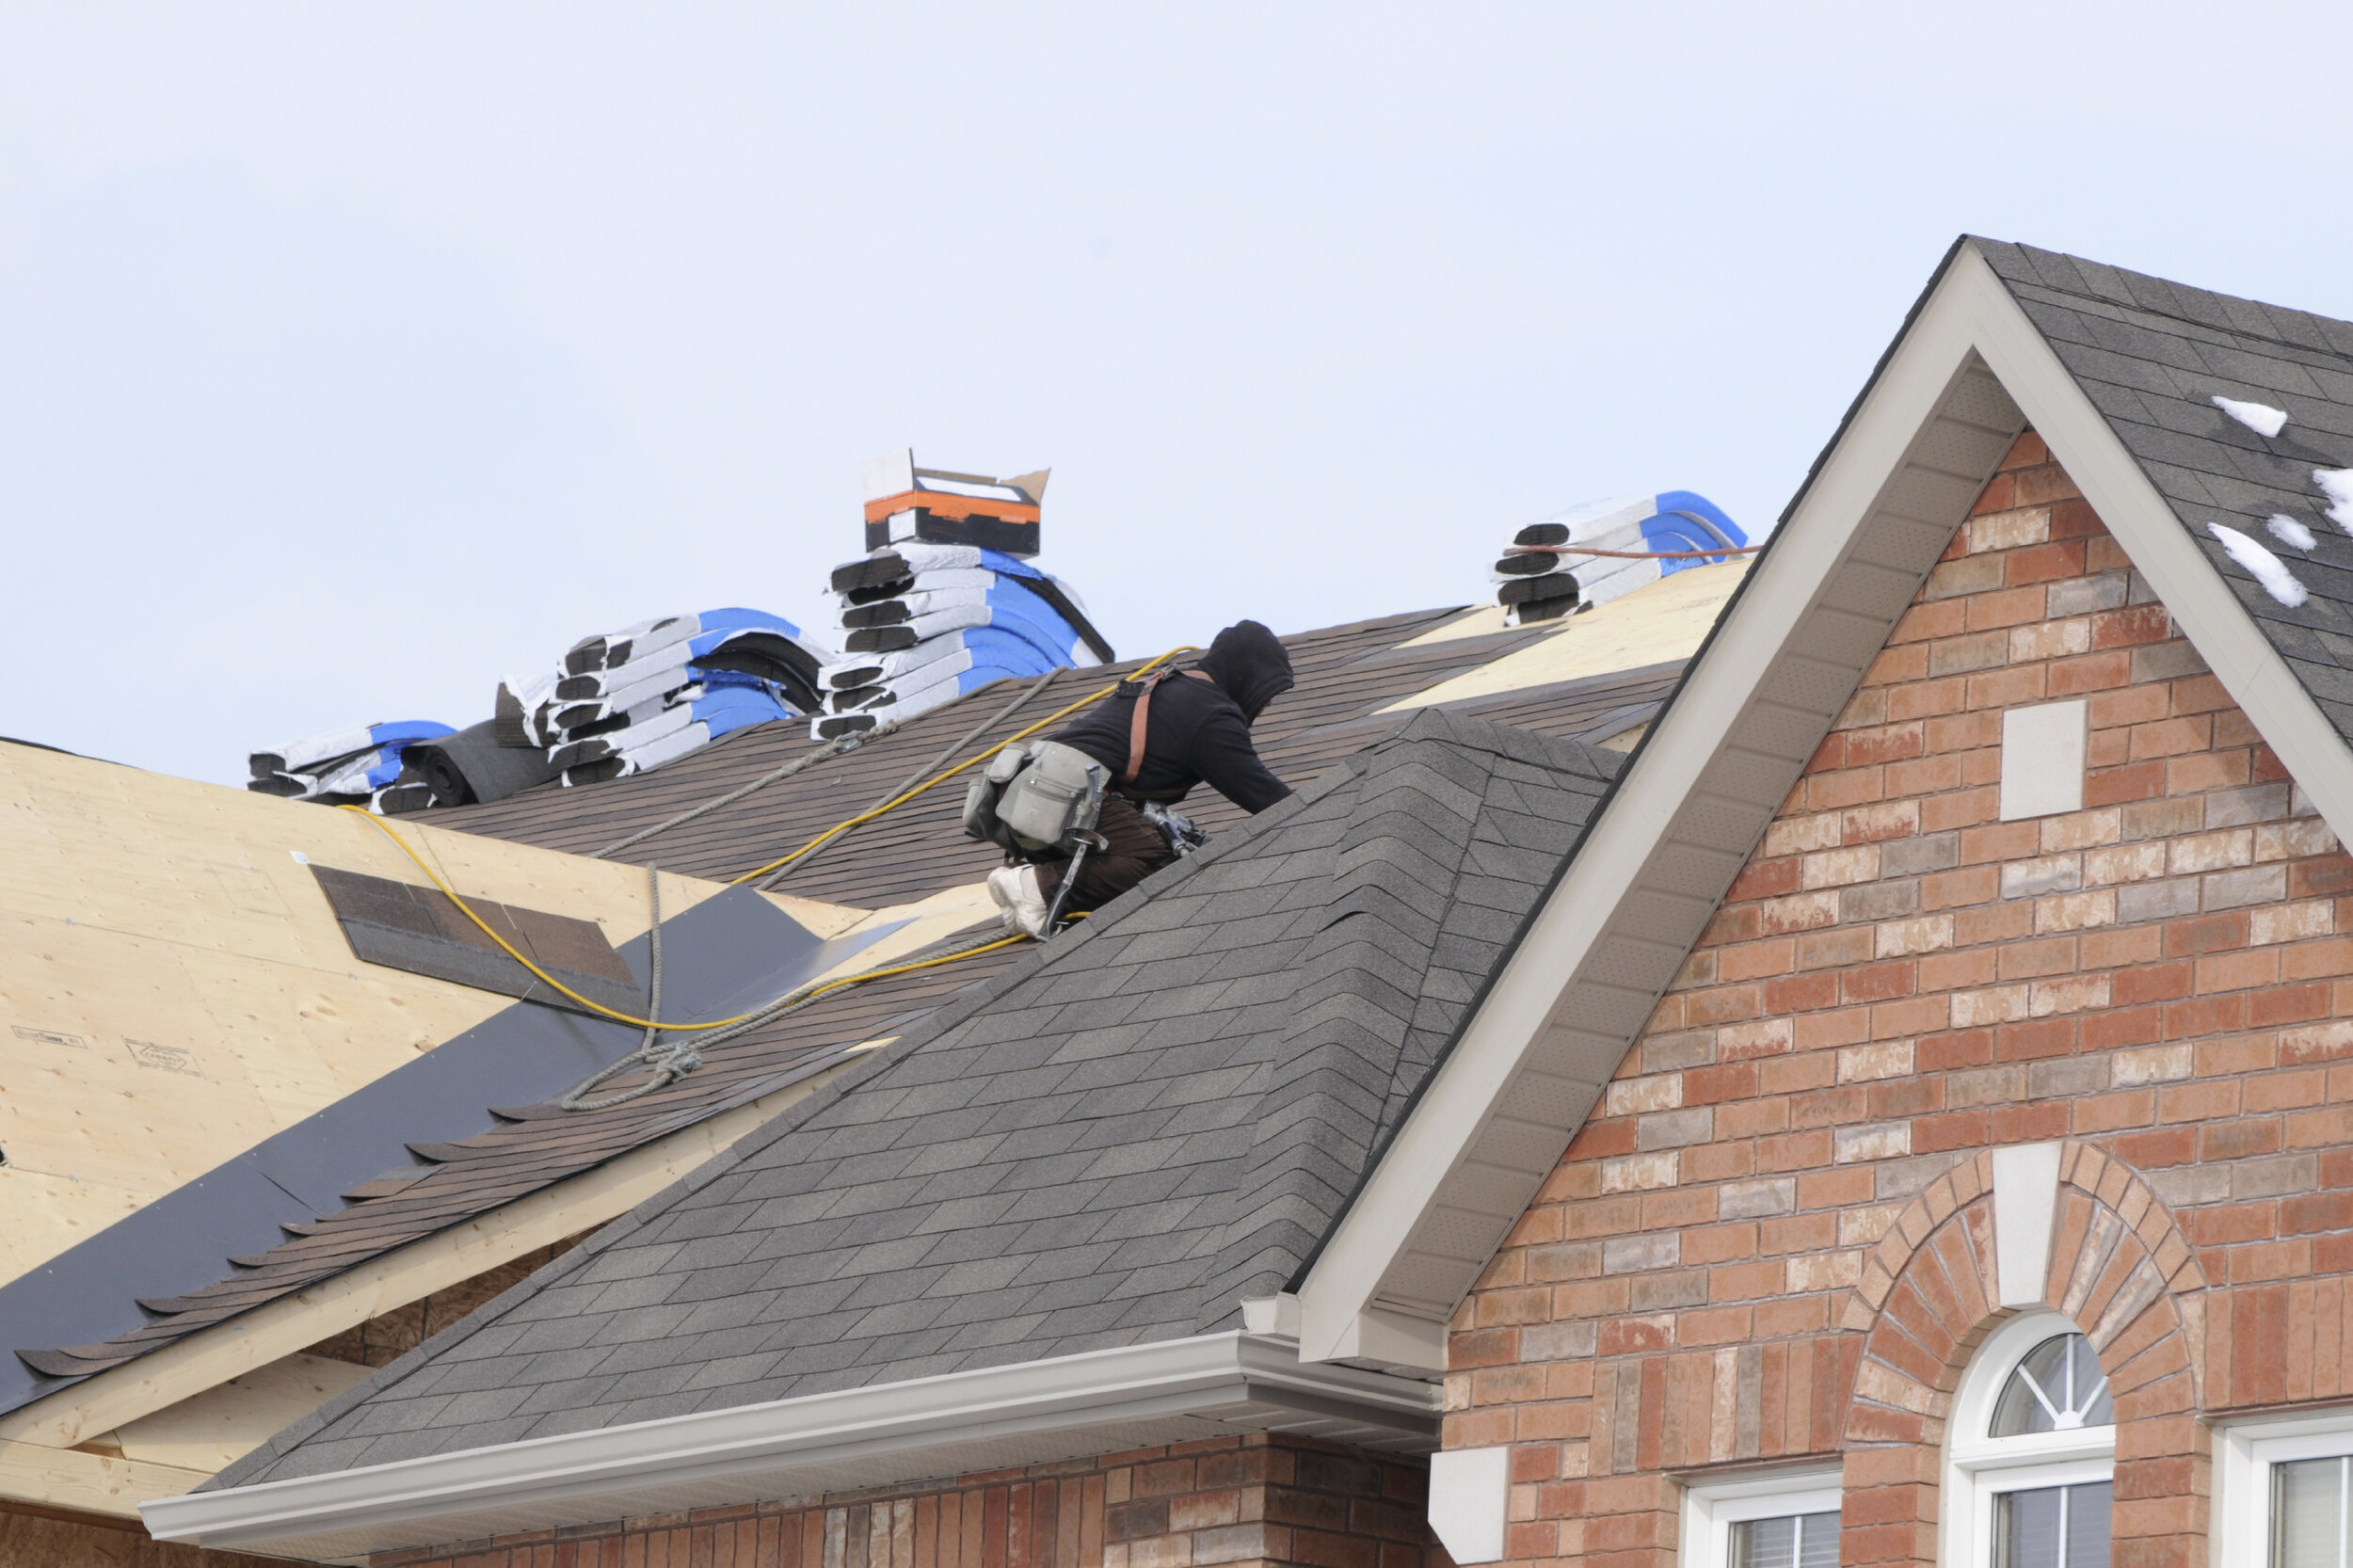 Spring TX Roof Replacement Near Me - When roof repair is not an option, call In the roof replacement experts . Avalanche Roofing Contractors of Spring TX is committed to professionally replacing old worn-out roofing materials with ease!